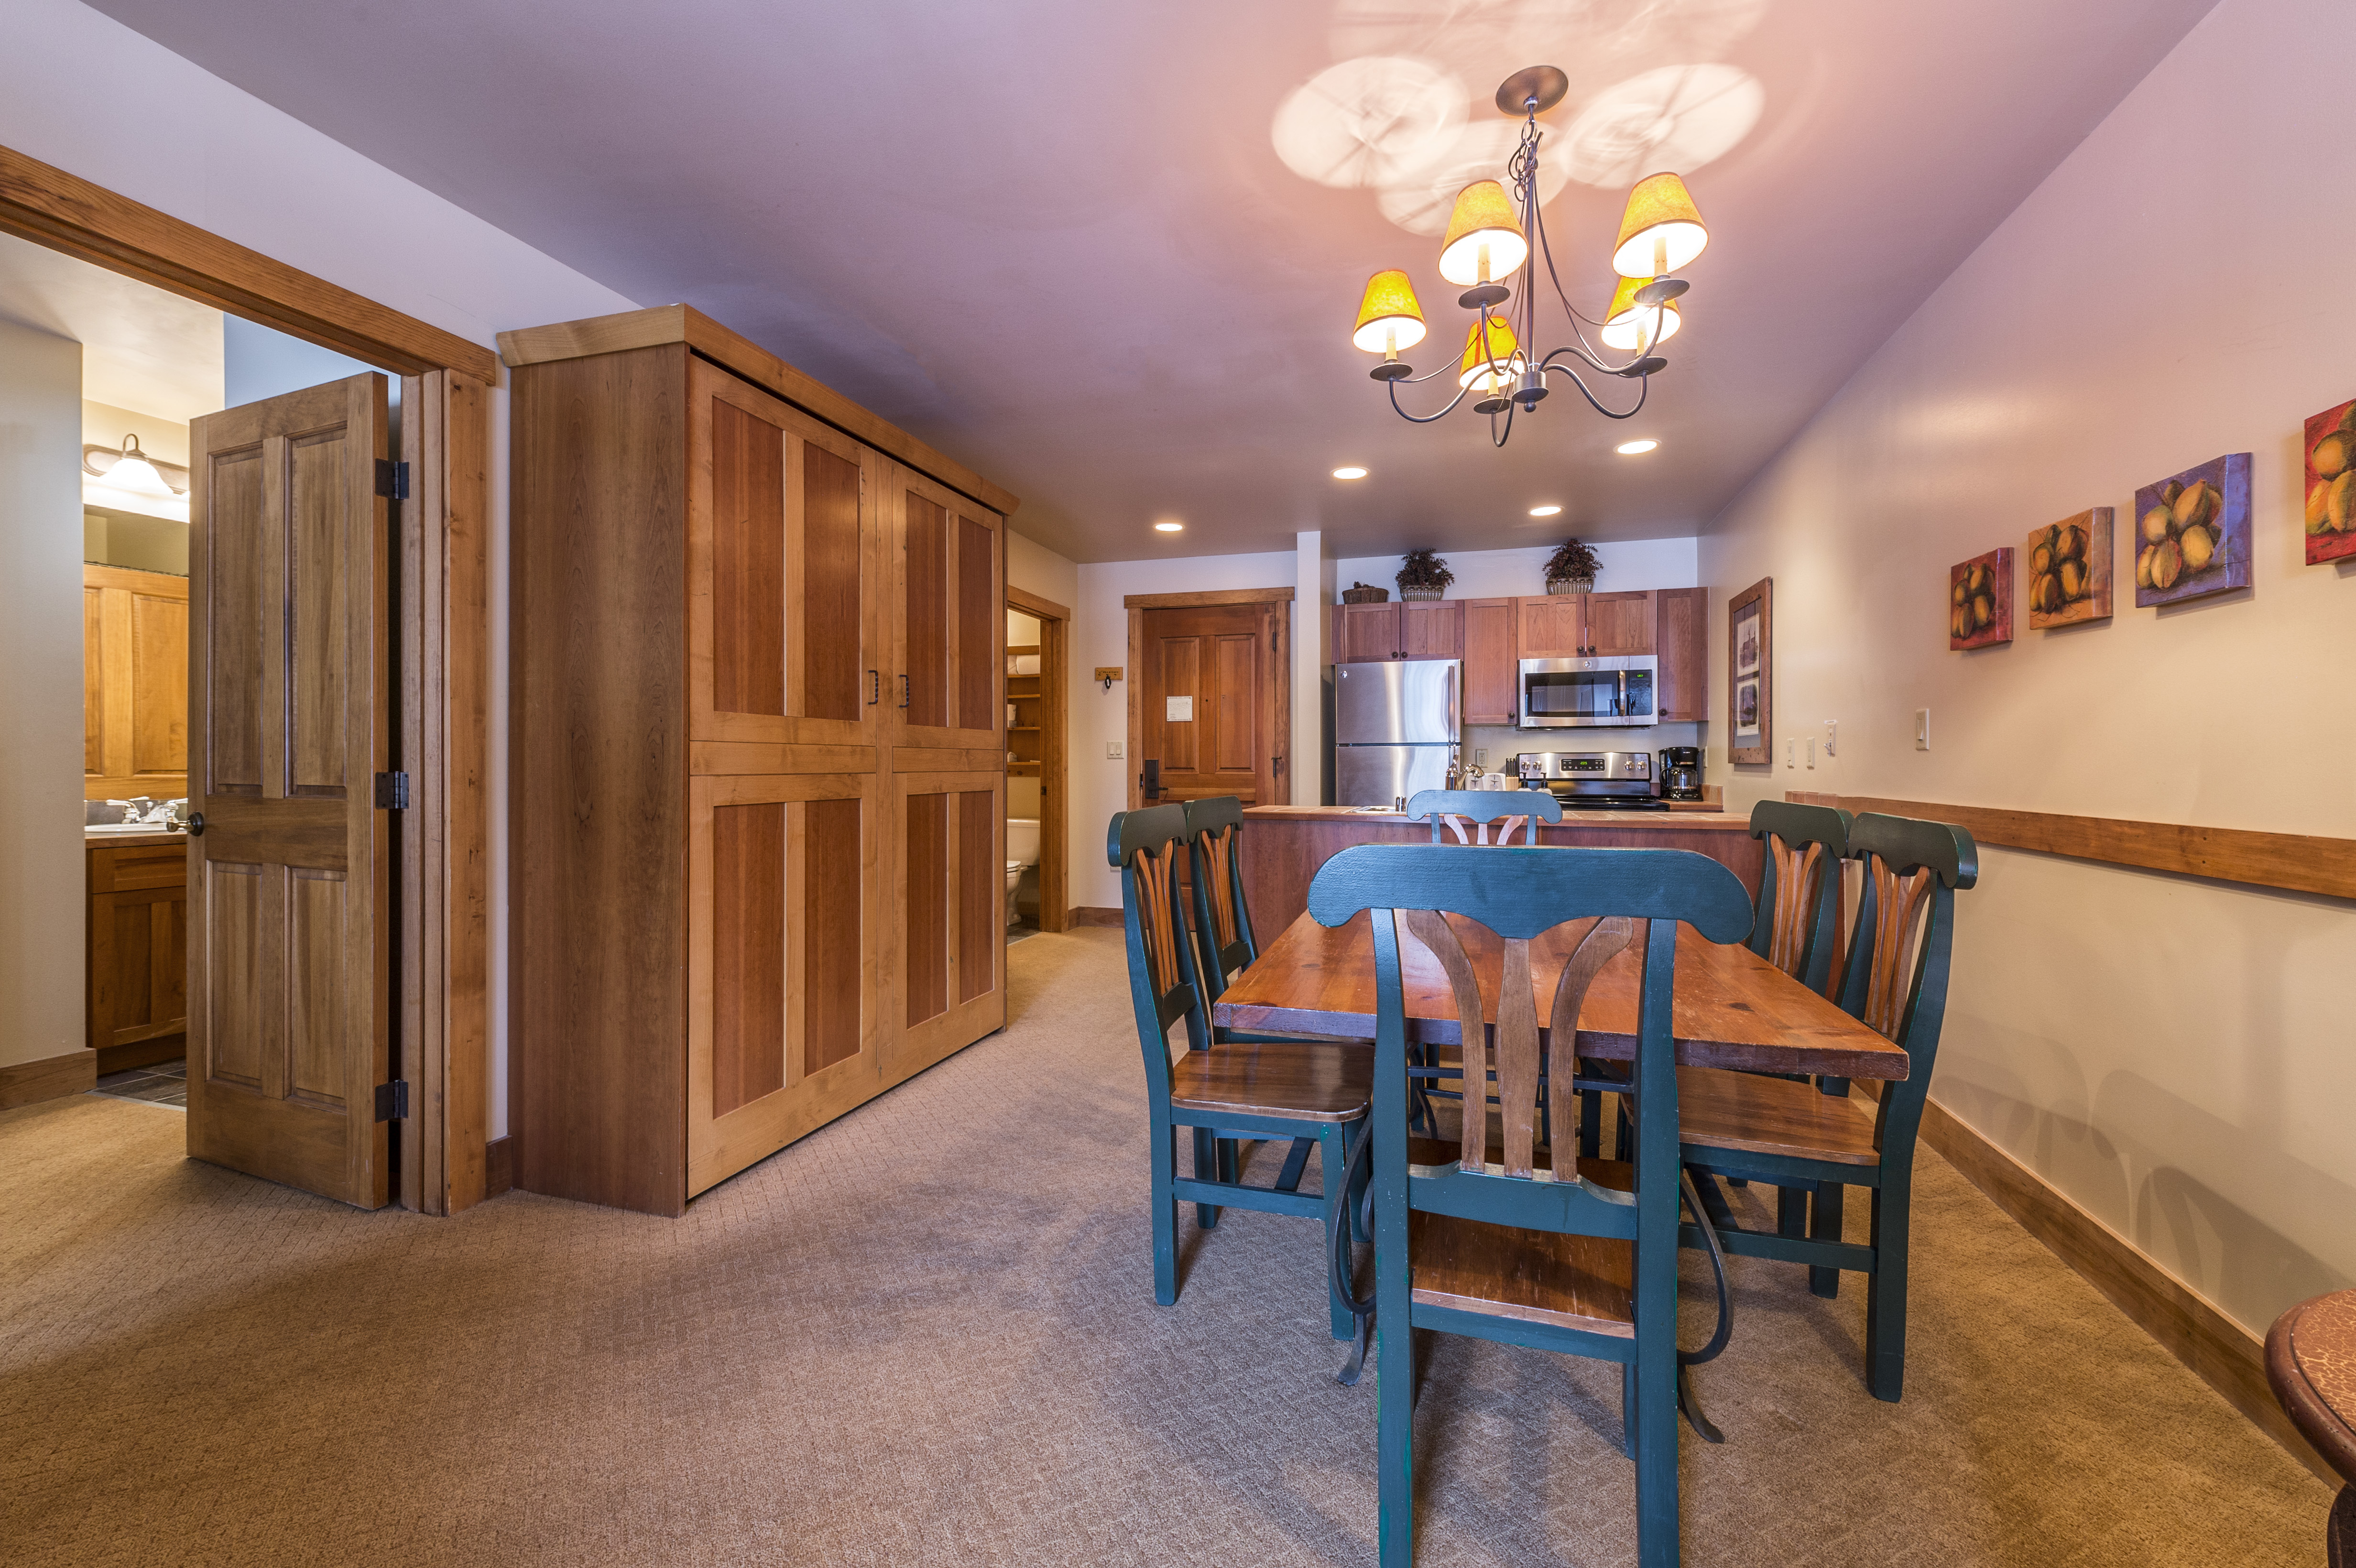 1g murphy kitchen table Pull down Murphy bed cabinet kitchen at far end 2nd Bath for those